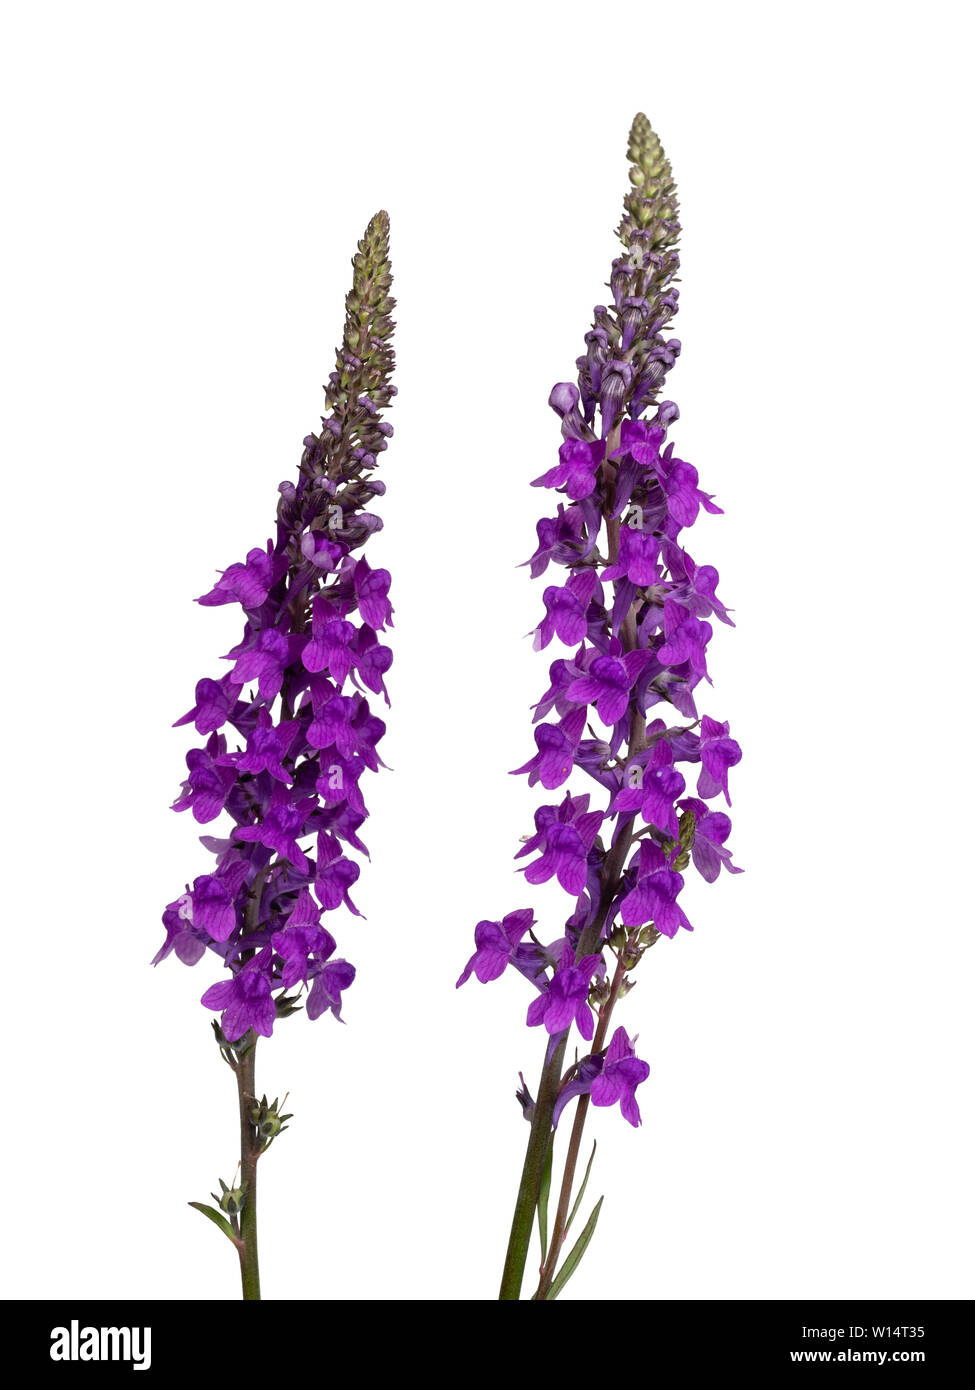 Purple flowers in the spike of toadflax, Linaria purpurea, an UK wildflower and cottage garden plant on a white background - Stock Image